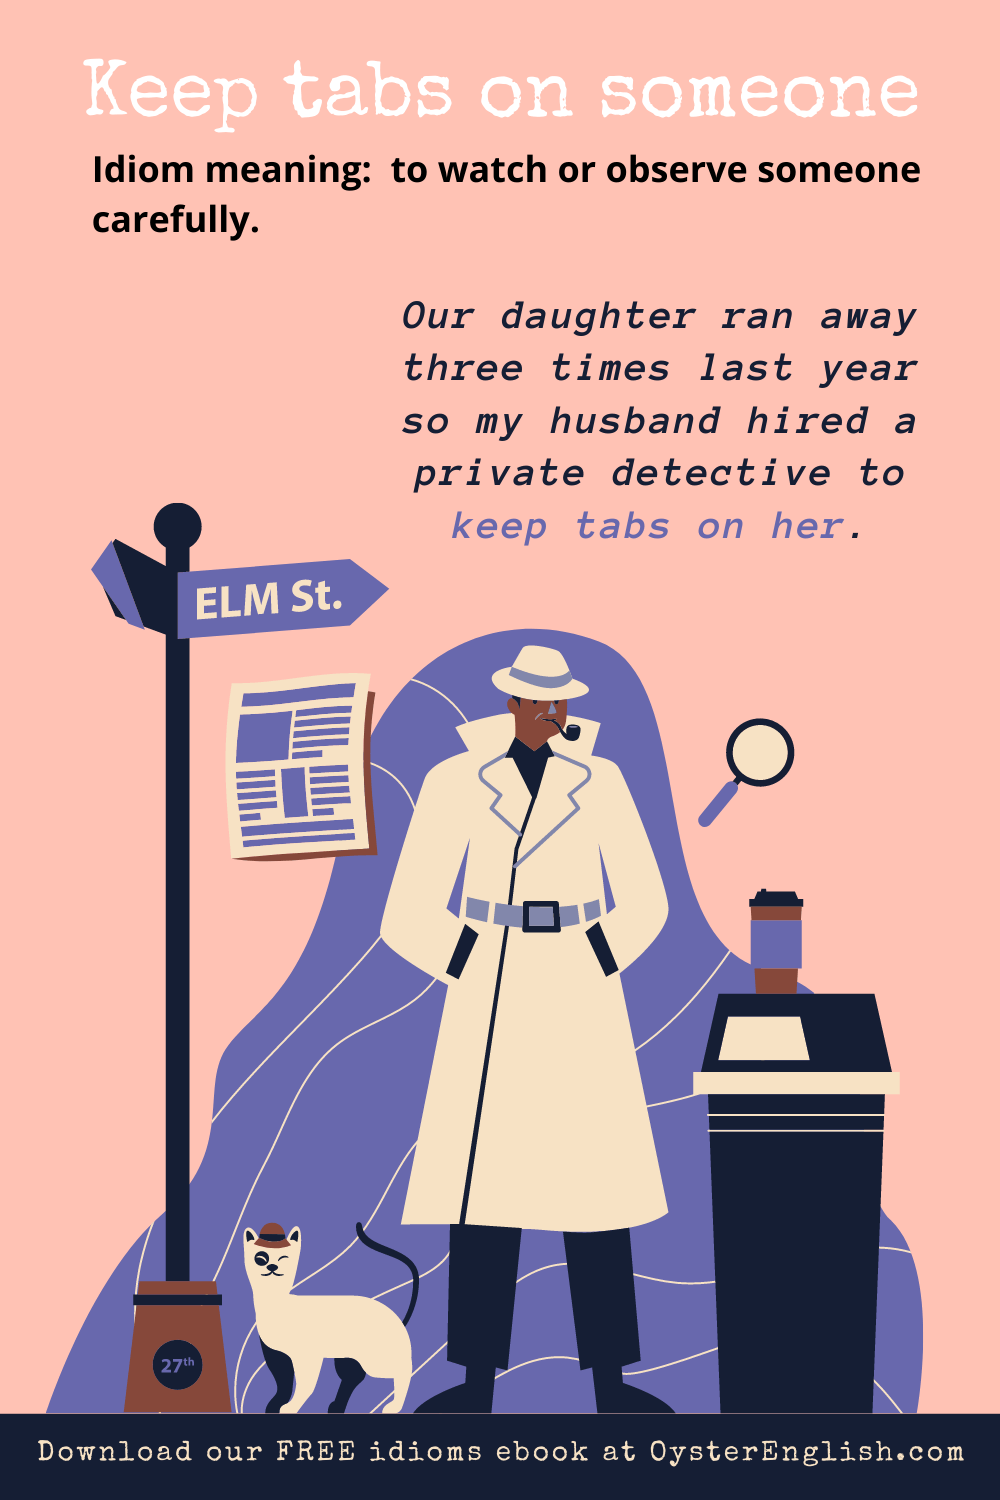 A detective dressed in a trench coat is standing on a street corner. Caption: Our daughter ran away three times last year so my husband hired a private detective to keep tabs on her.